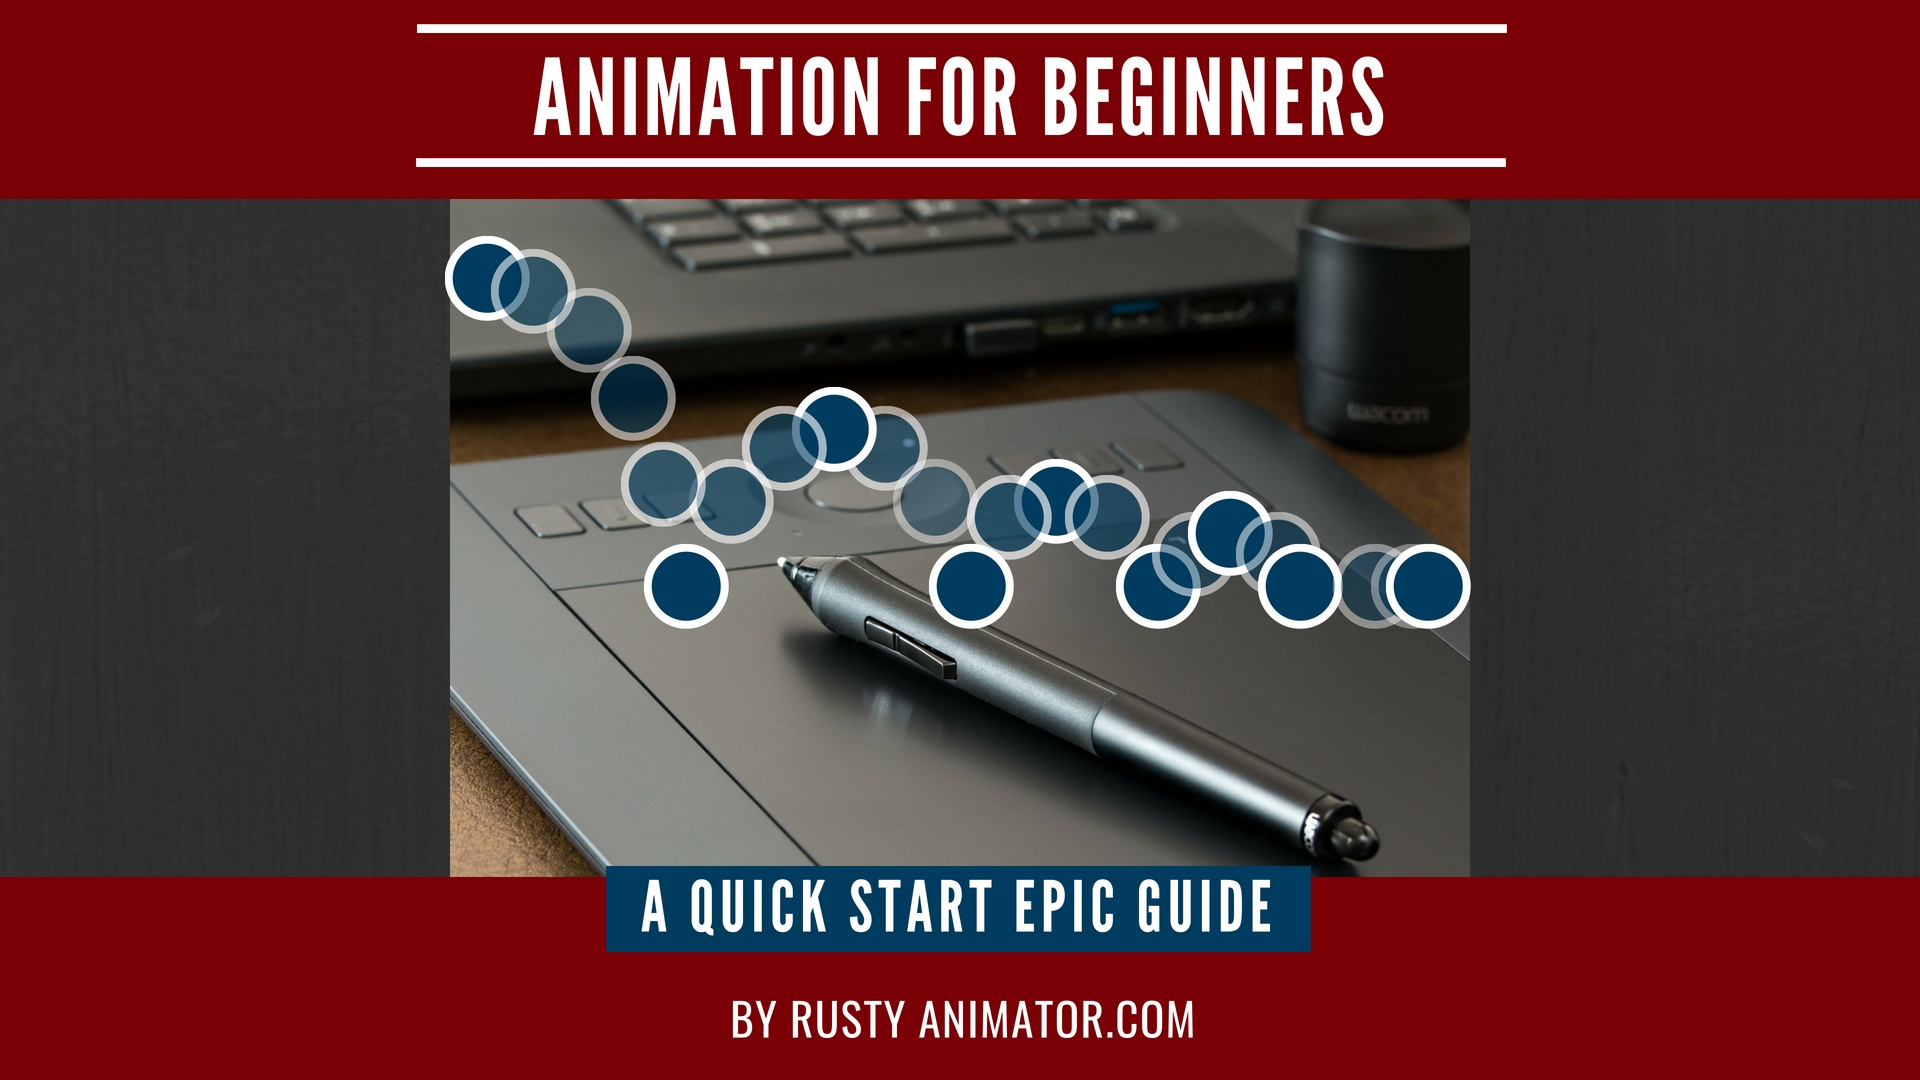 Animation For Beginners [A Quick Start Epic Guide] | Rusty